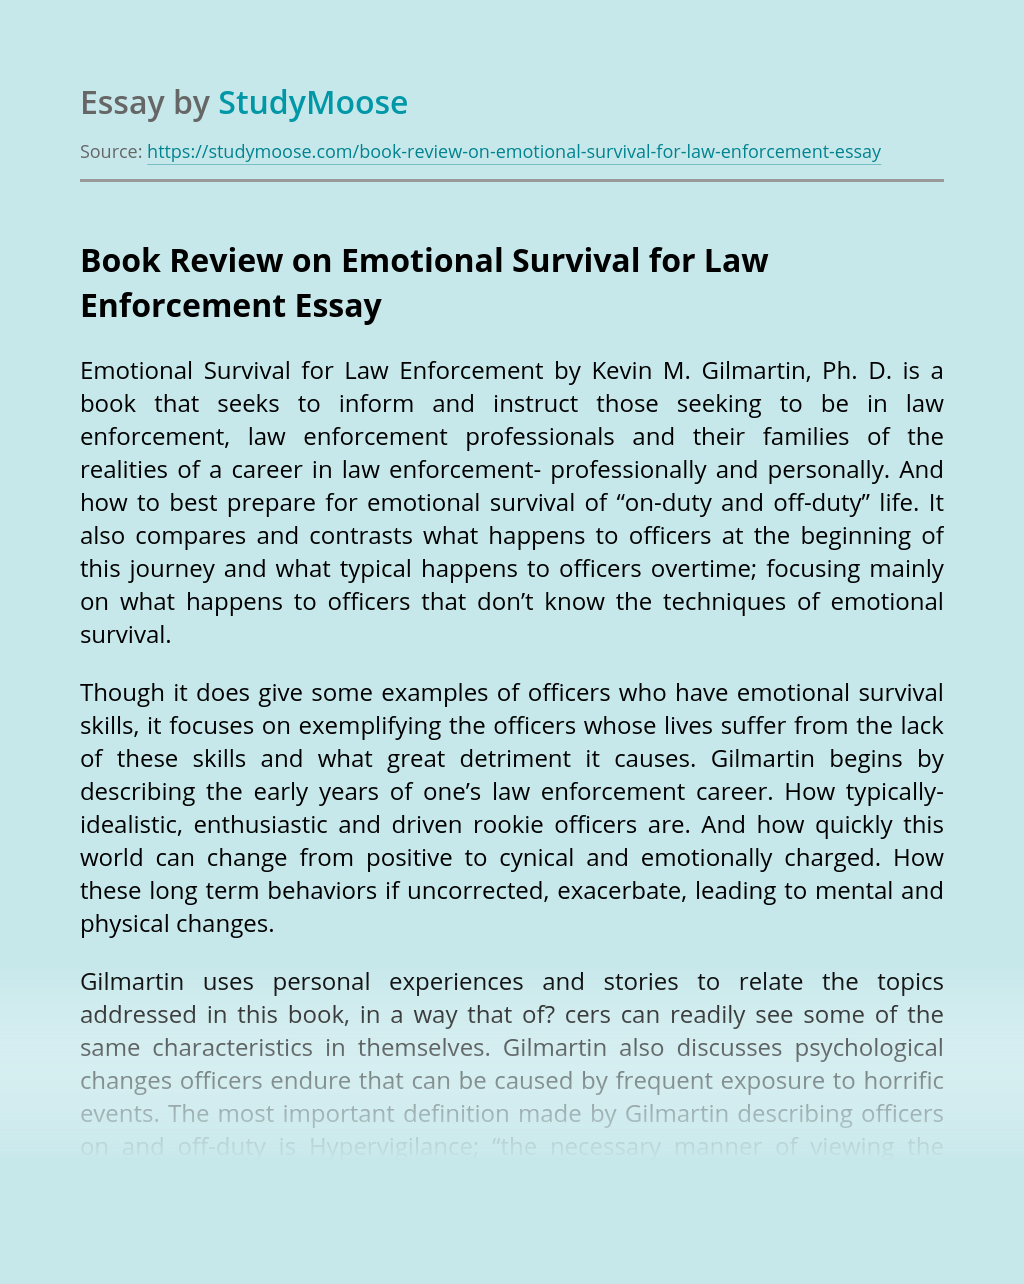 Book Review on Emotional Survival for Law Enforcement